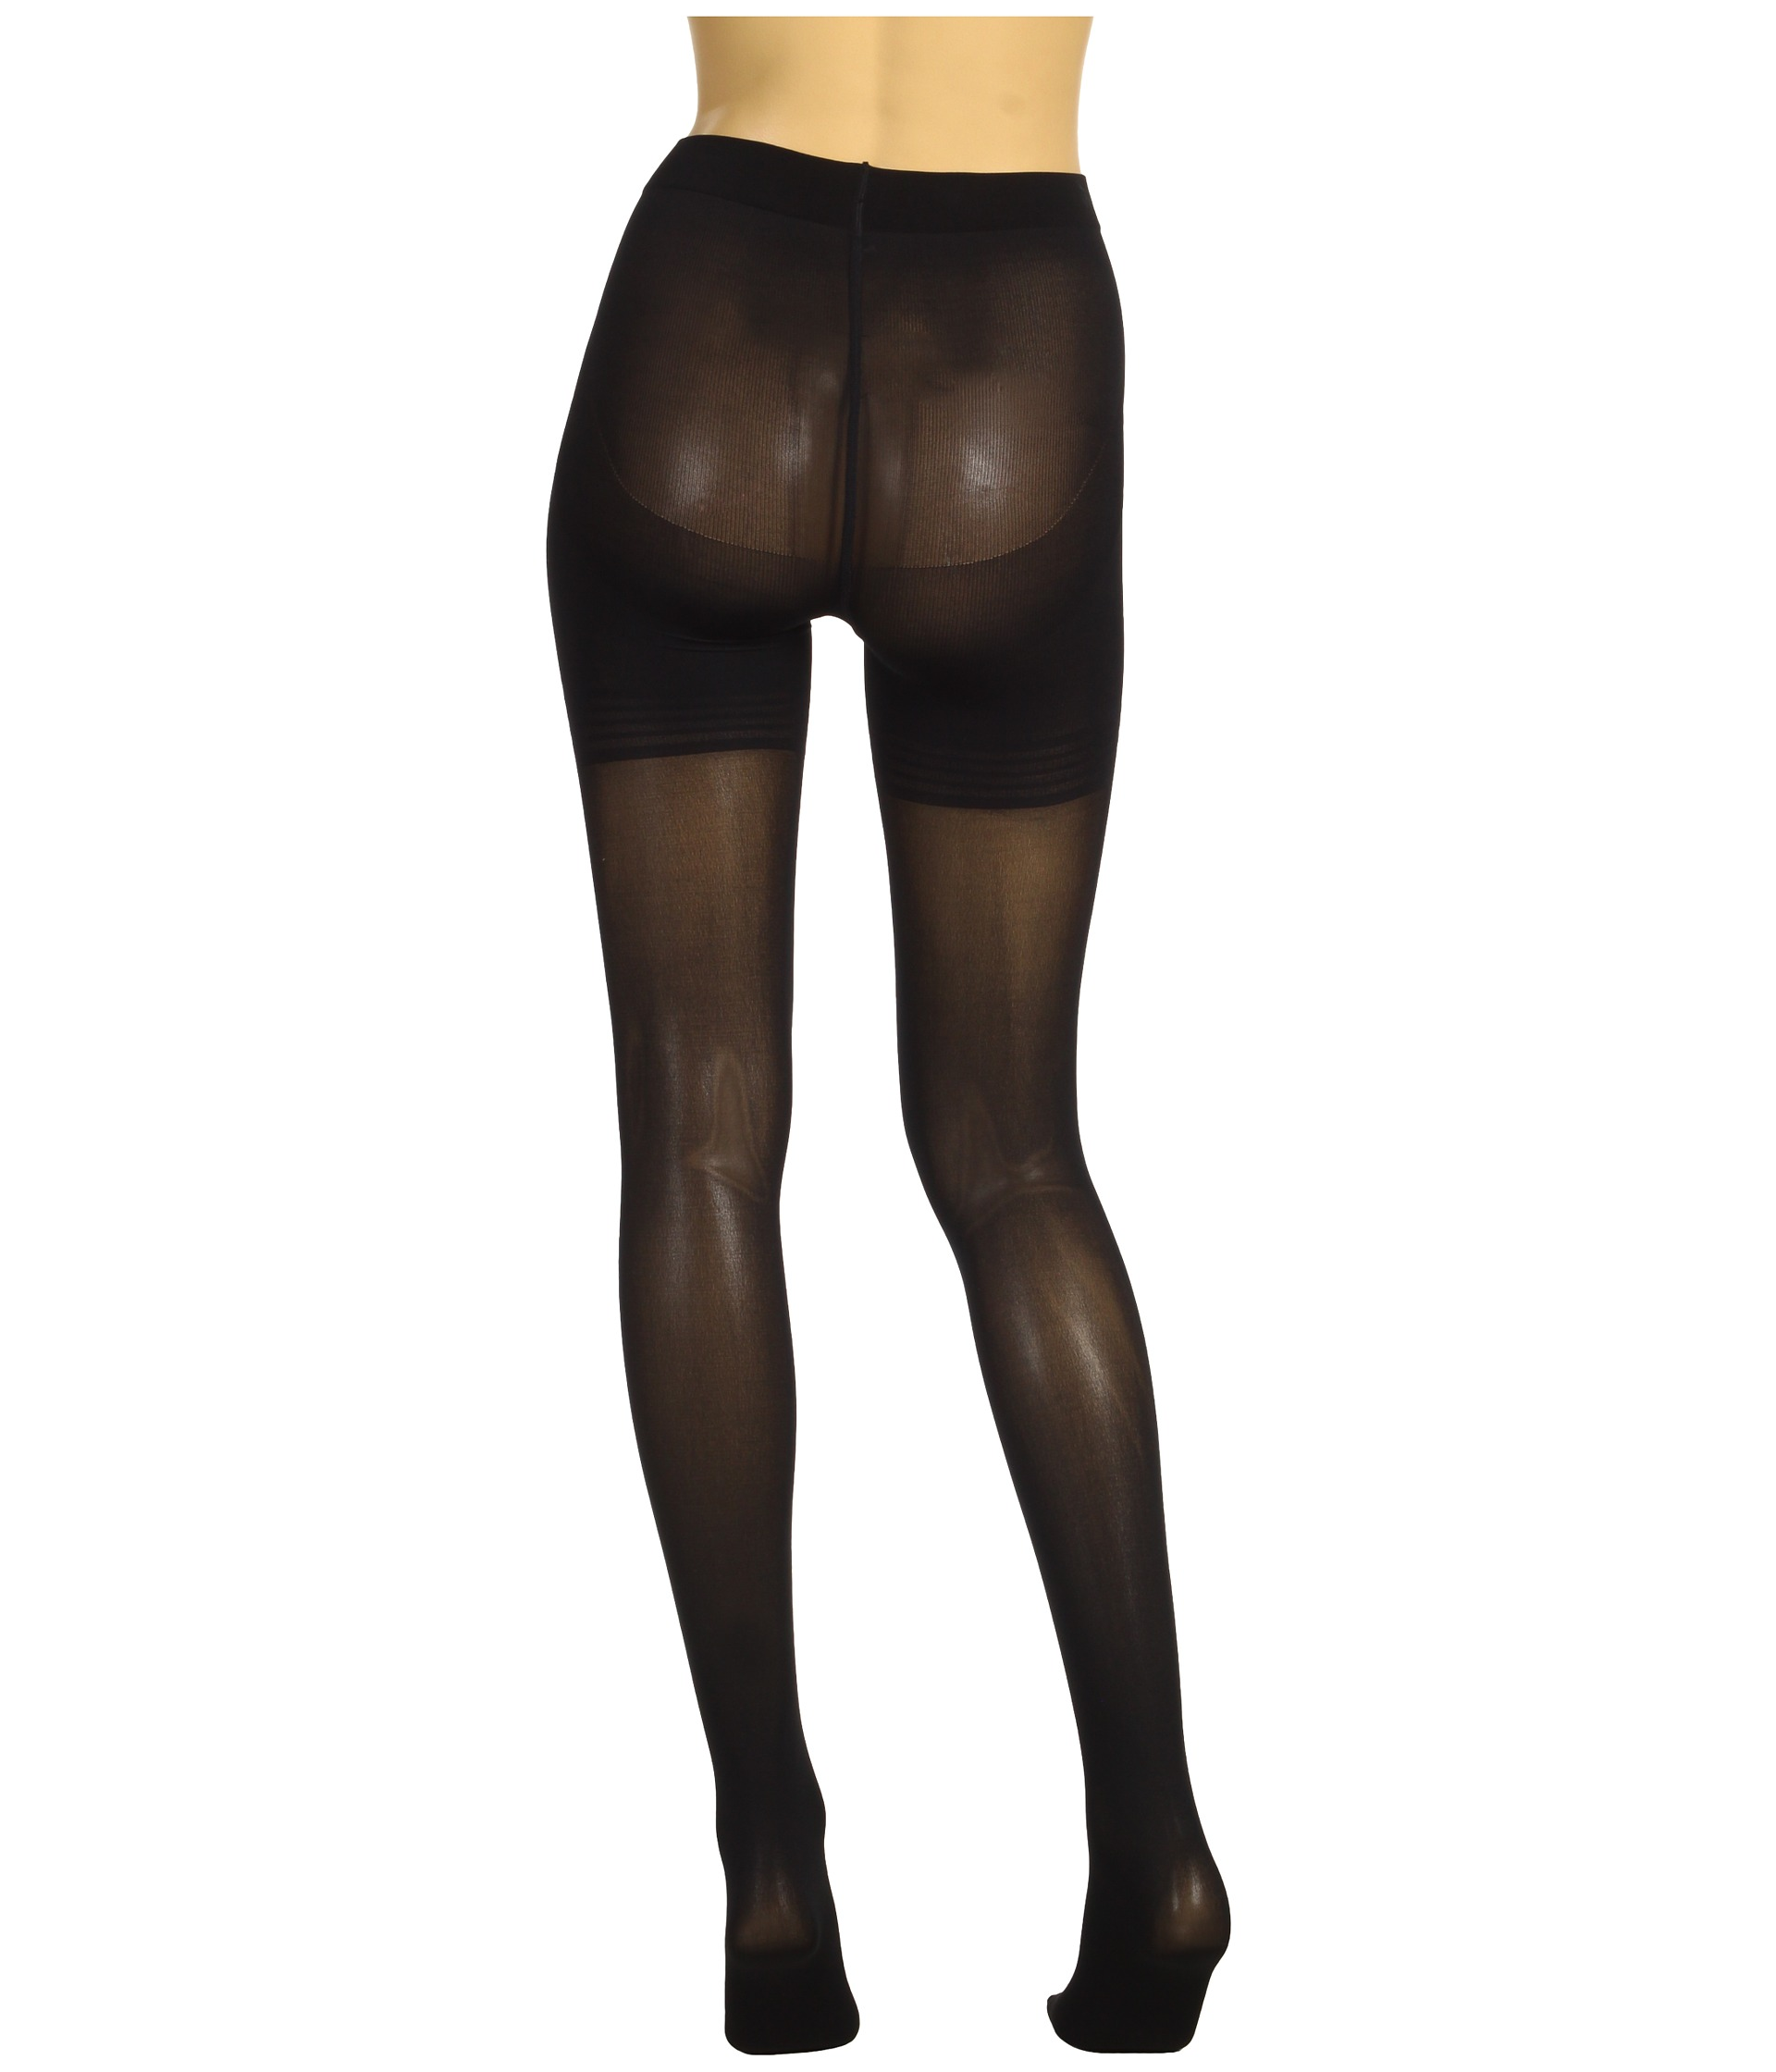 16f5576f3f Wolford Power Shape 50 Control Top Tights Black